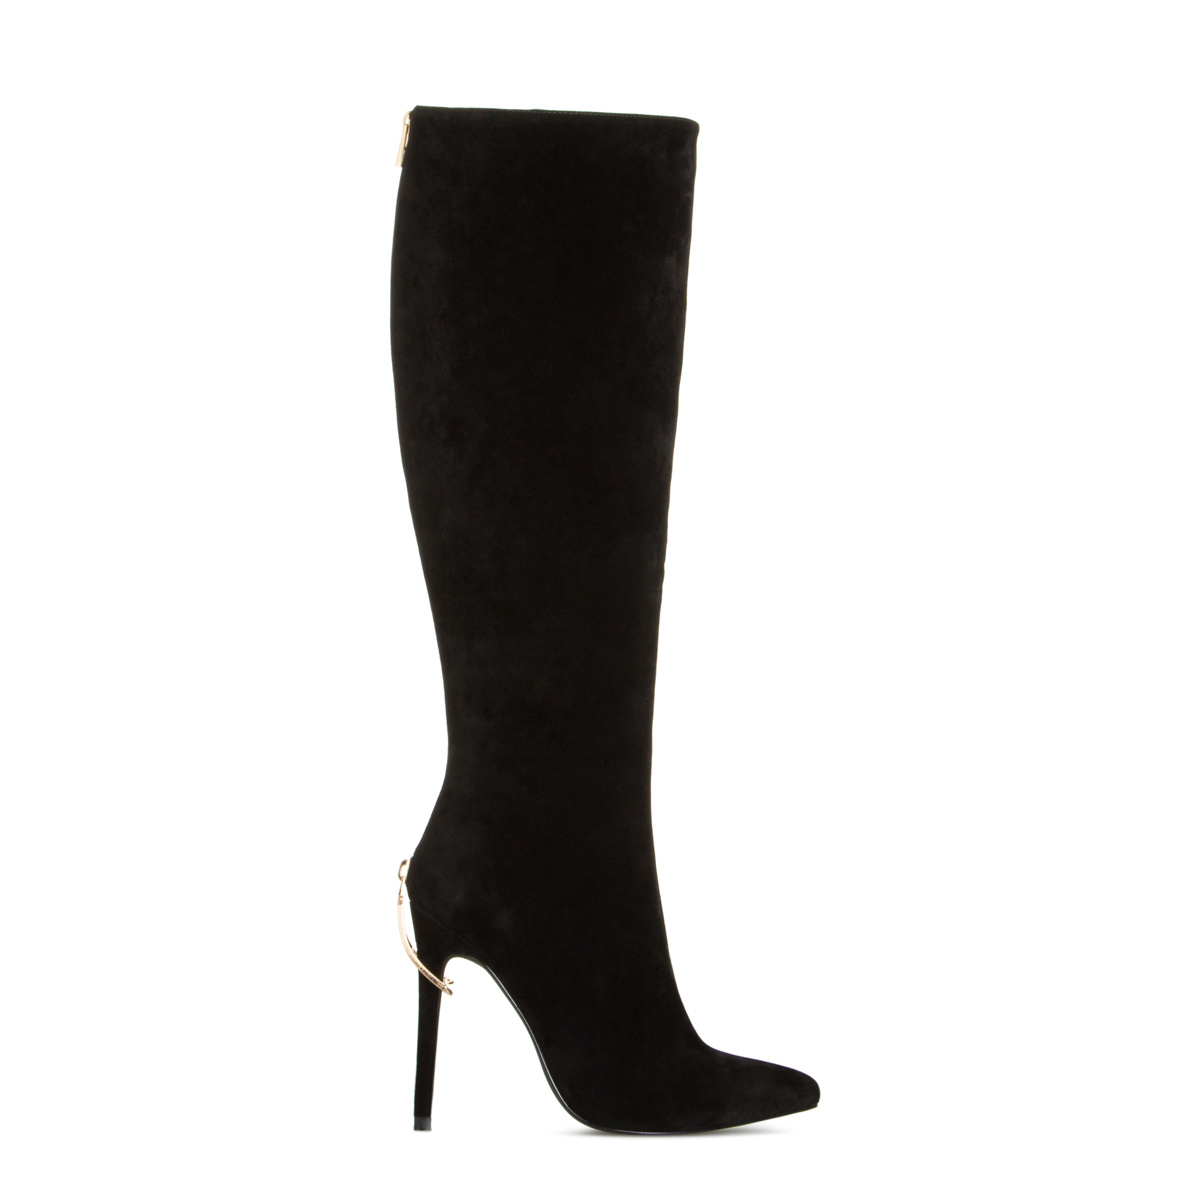 Ariz Cheap Knee High Boots, Women's Black High Heel Boots ...